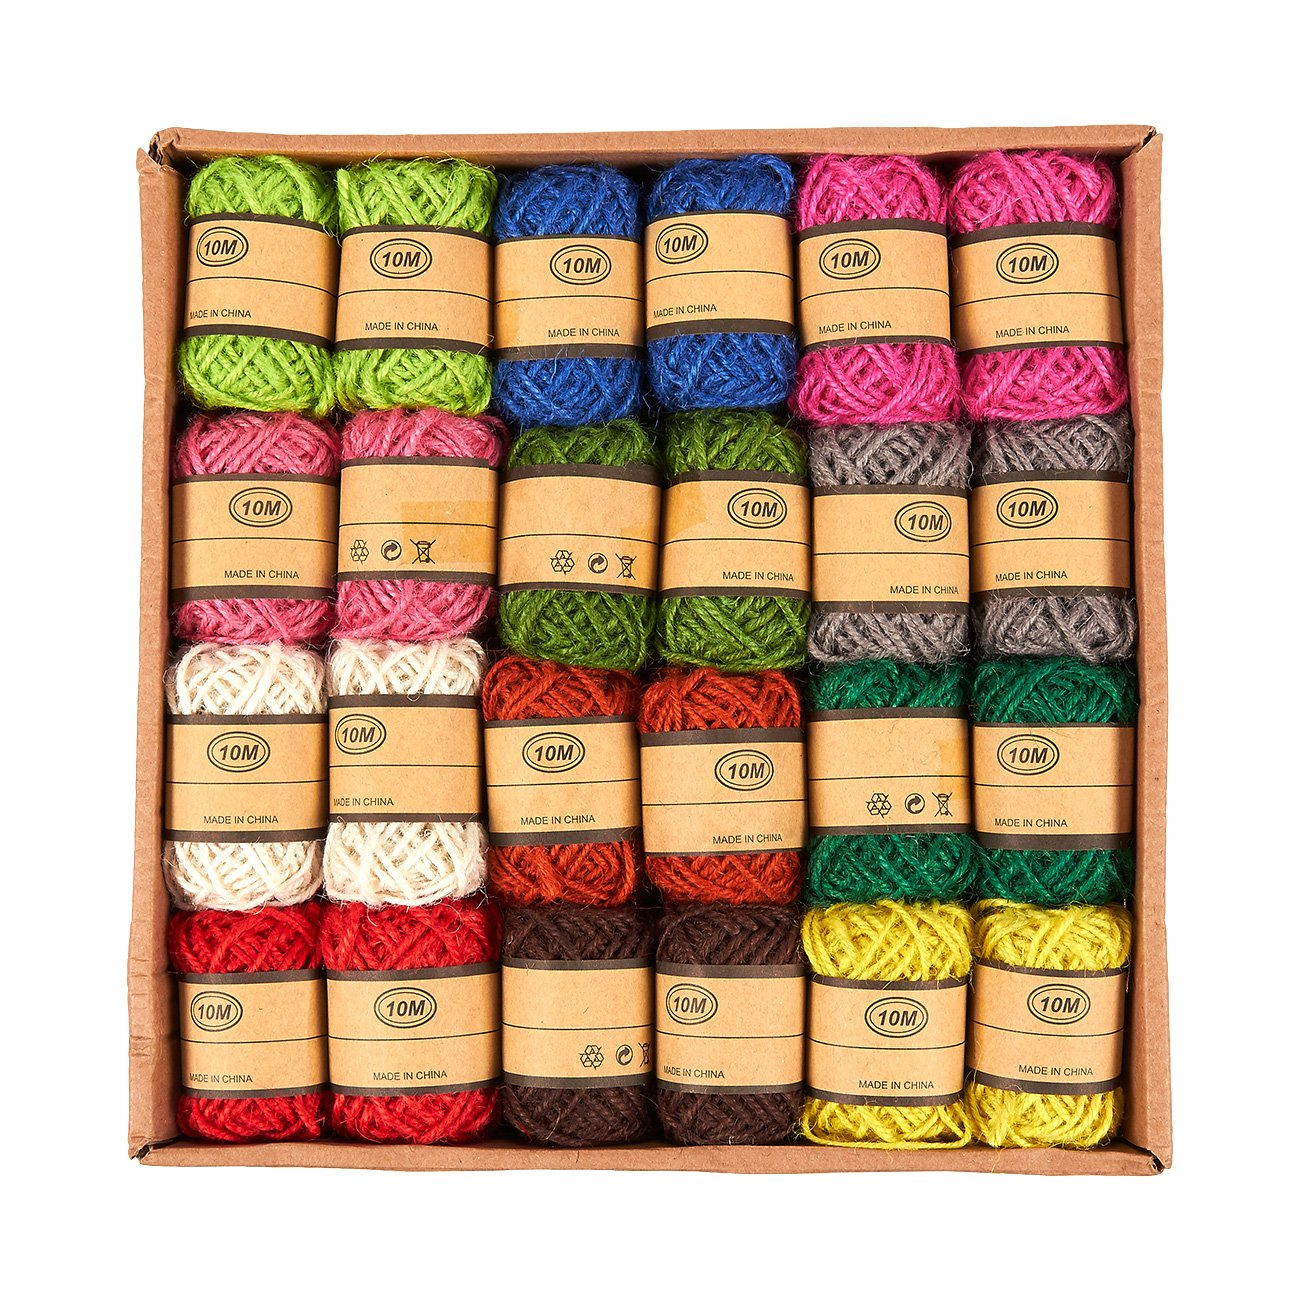 24-Roll Set of Jute Twine - Natural Twine Rope, Jute String, Twine String for DIY Crafts, Decoration, Embellishments, Random Assorted Colors - 11 Yards Per Roll by Juvale